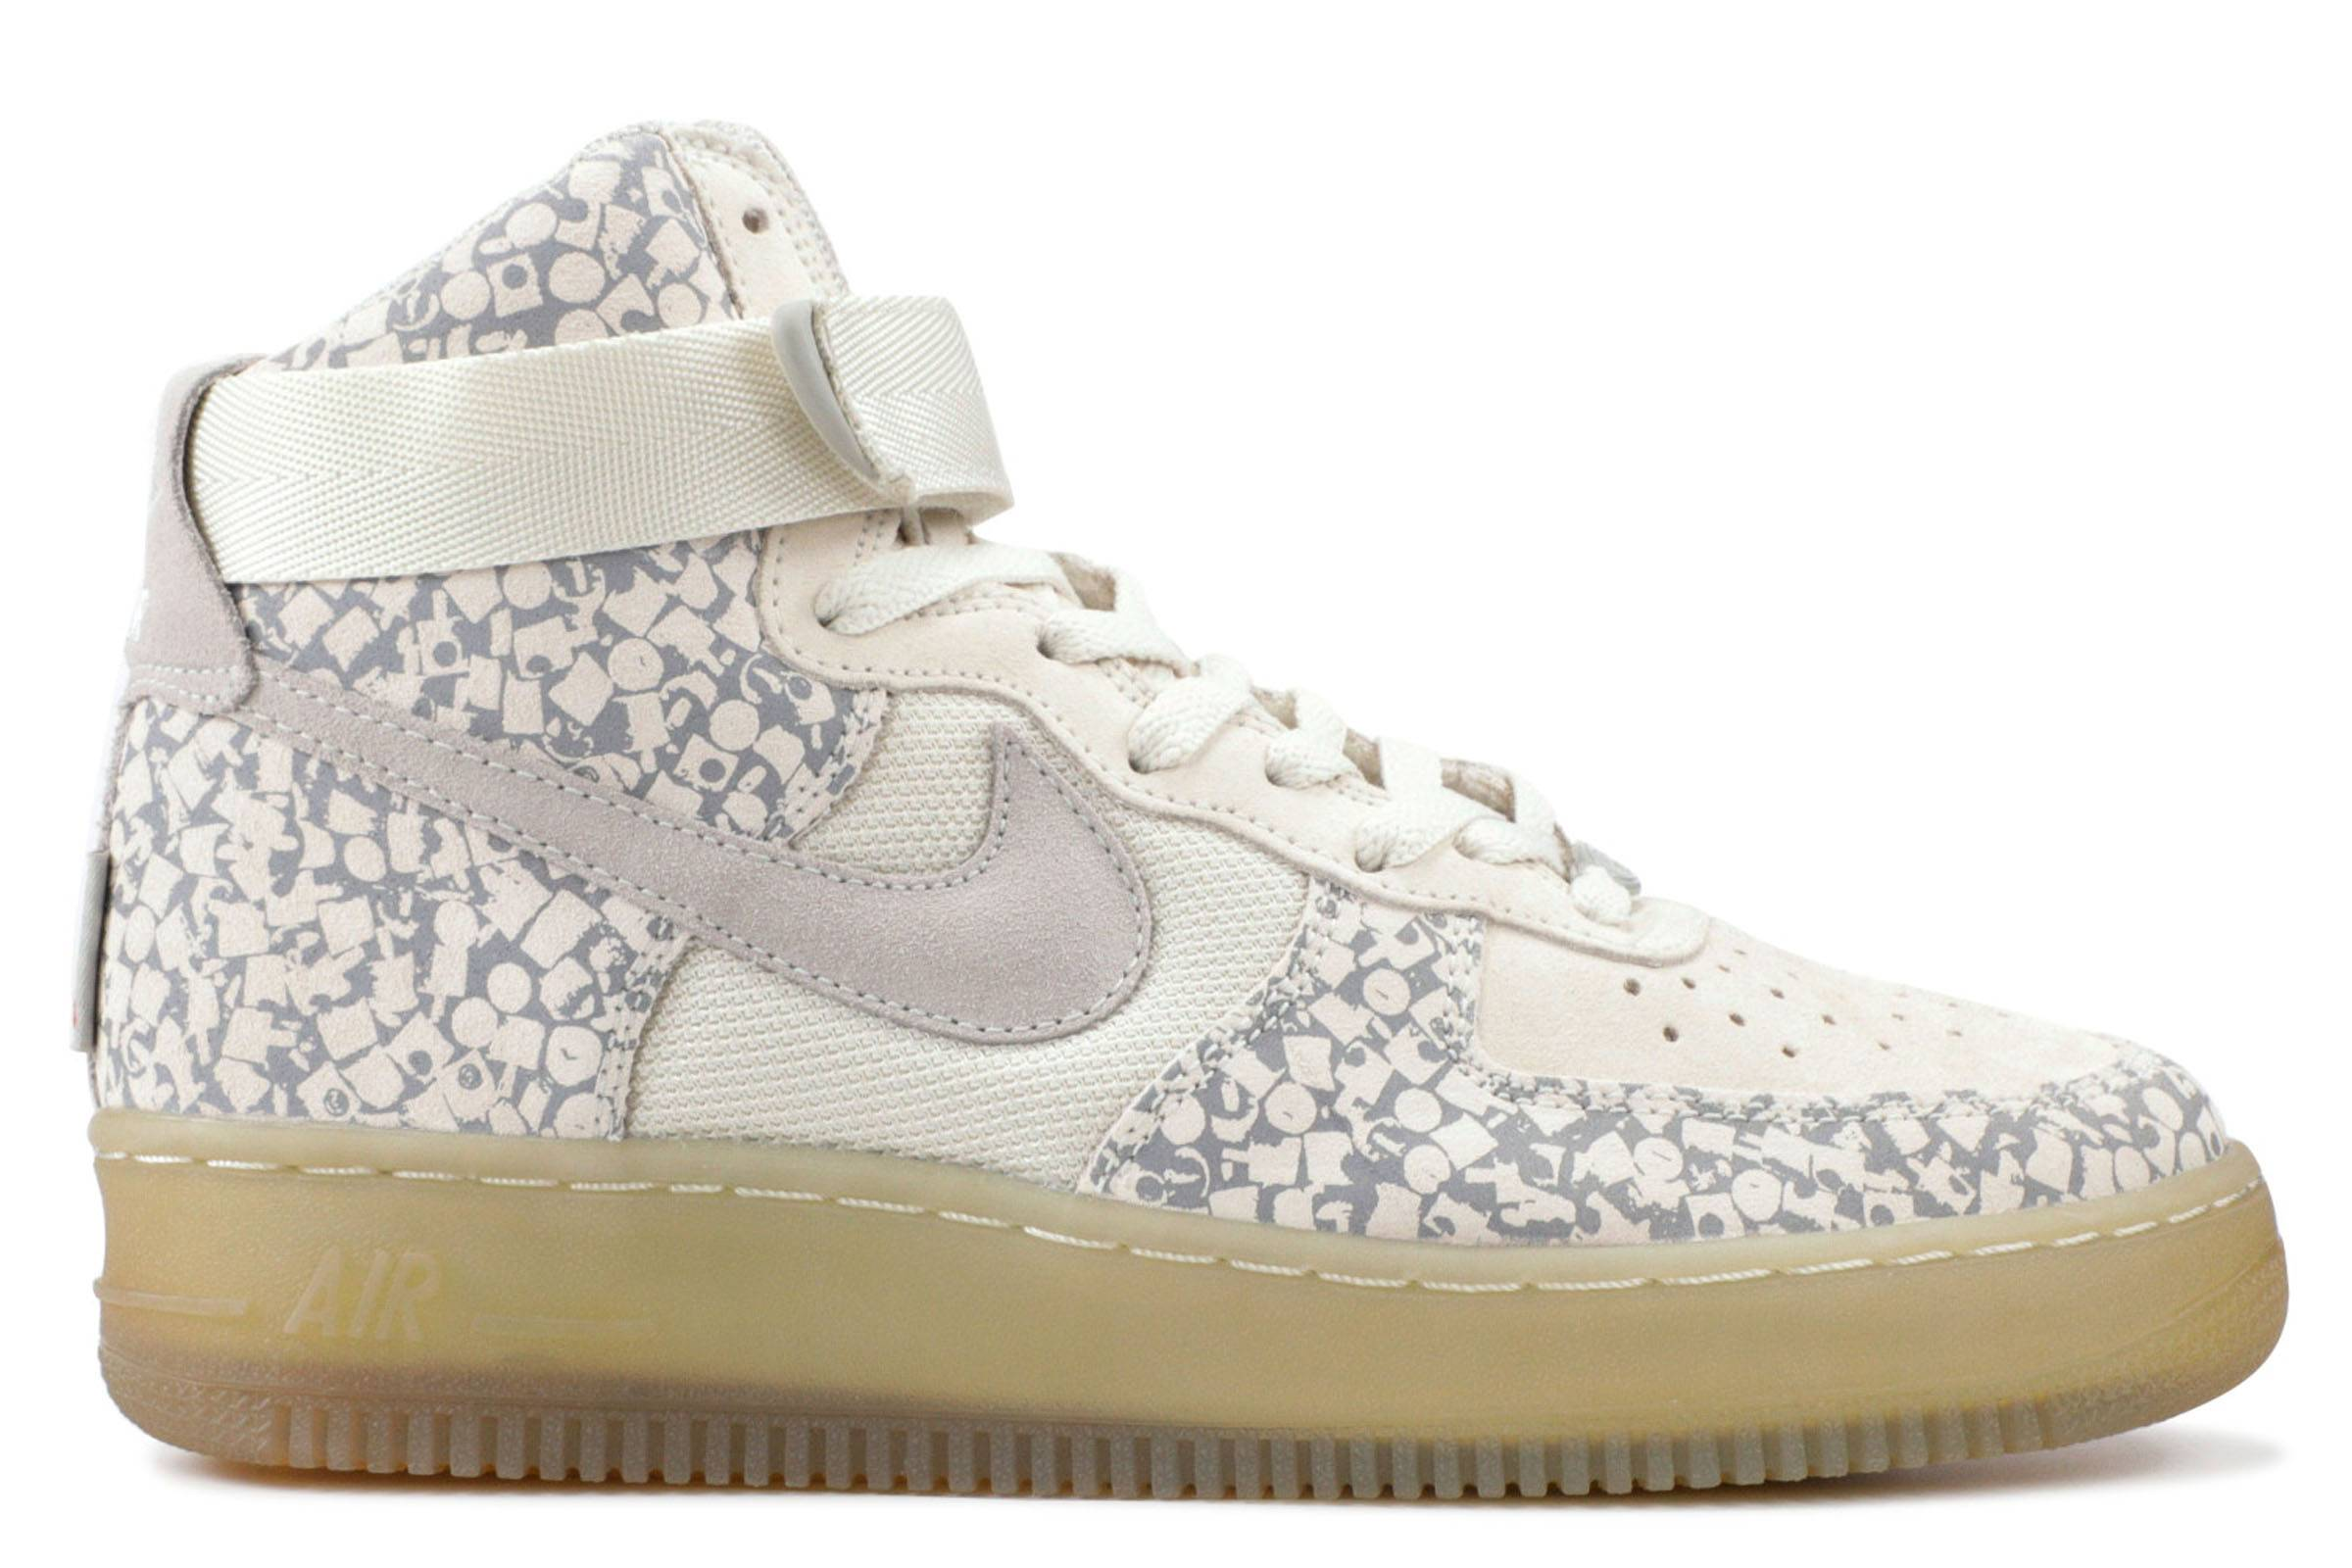 meet 8ac55 3862a In December 2006, at Nikes One Night Only event, the Nike x Stash Air  Force 1 High was voted the greatest Air Force 1 of all-time.